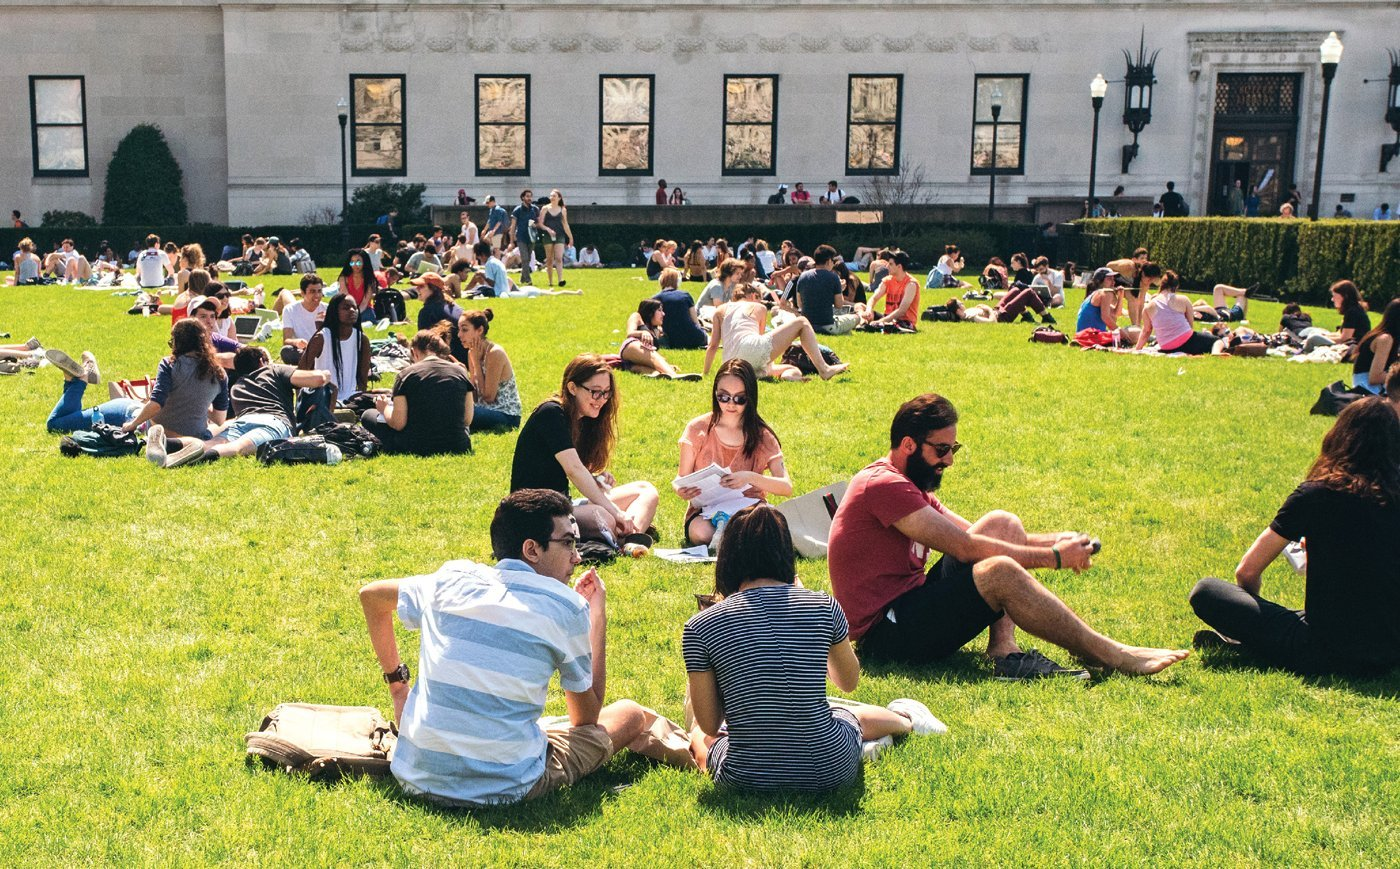 Many students seated on a grassy lawn on the Columbia University campus